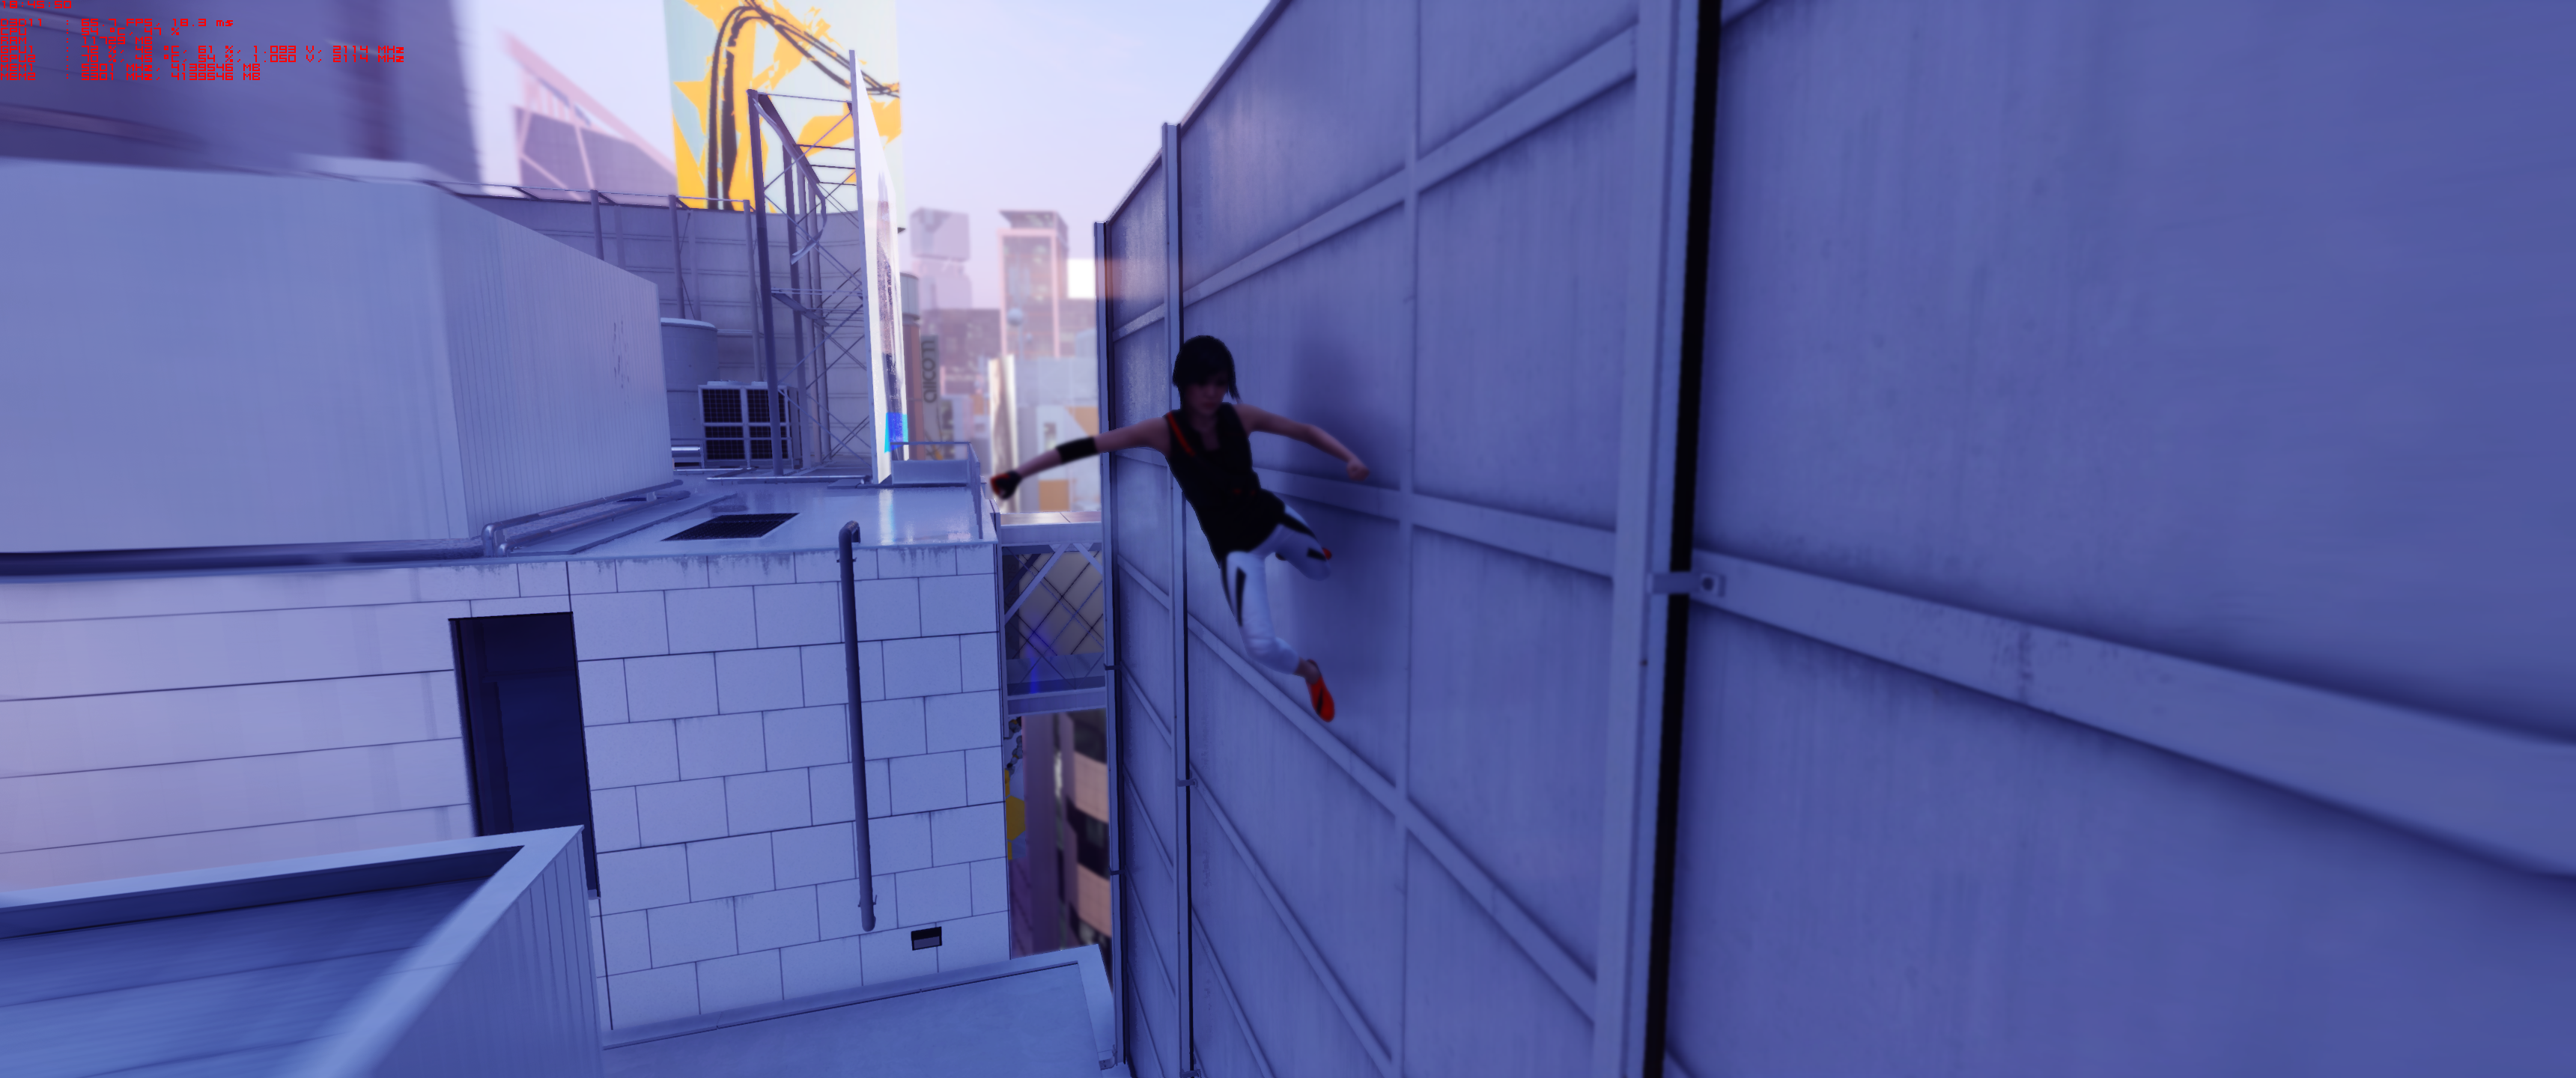 Mirror's Edge Catalyst Screenshot 2016.08.20 - 18.45.50.81